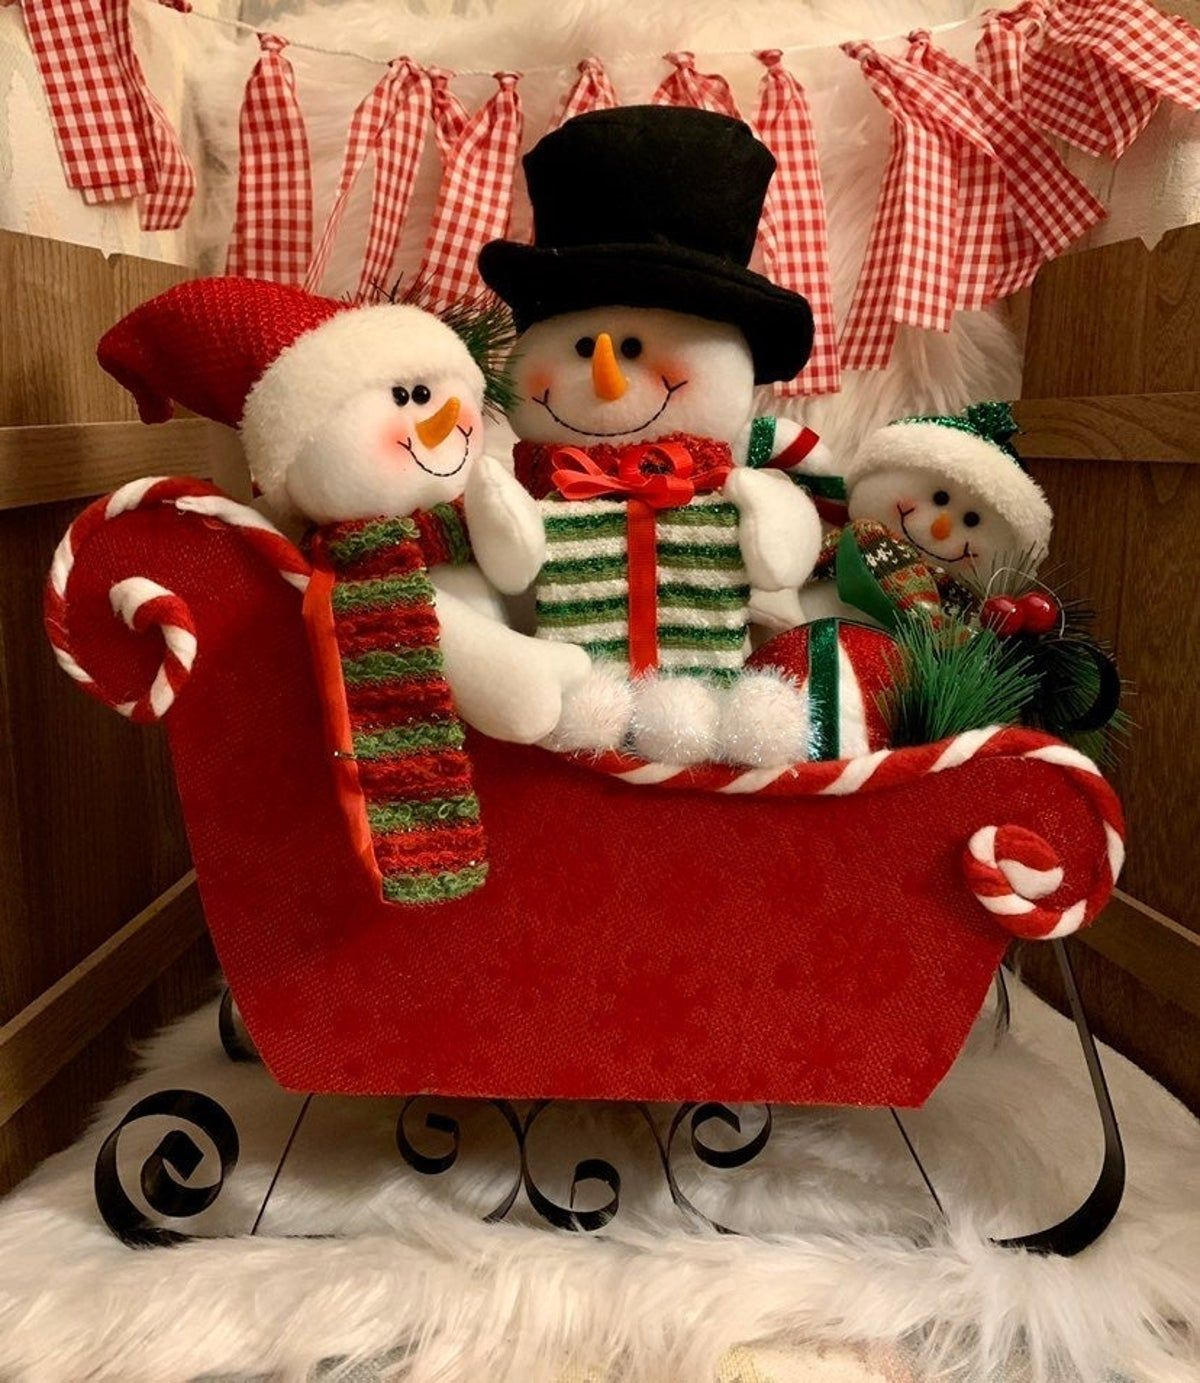 Snowman Family in Sleigh in 2020 Christmas decorations